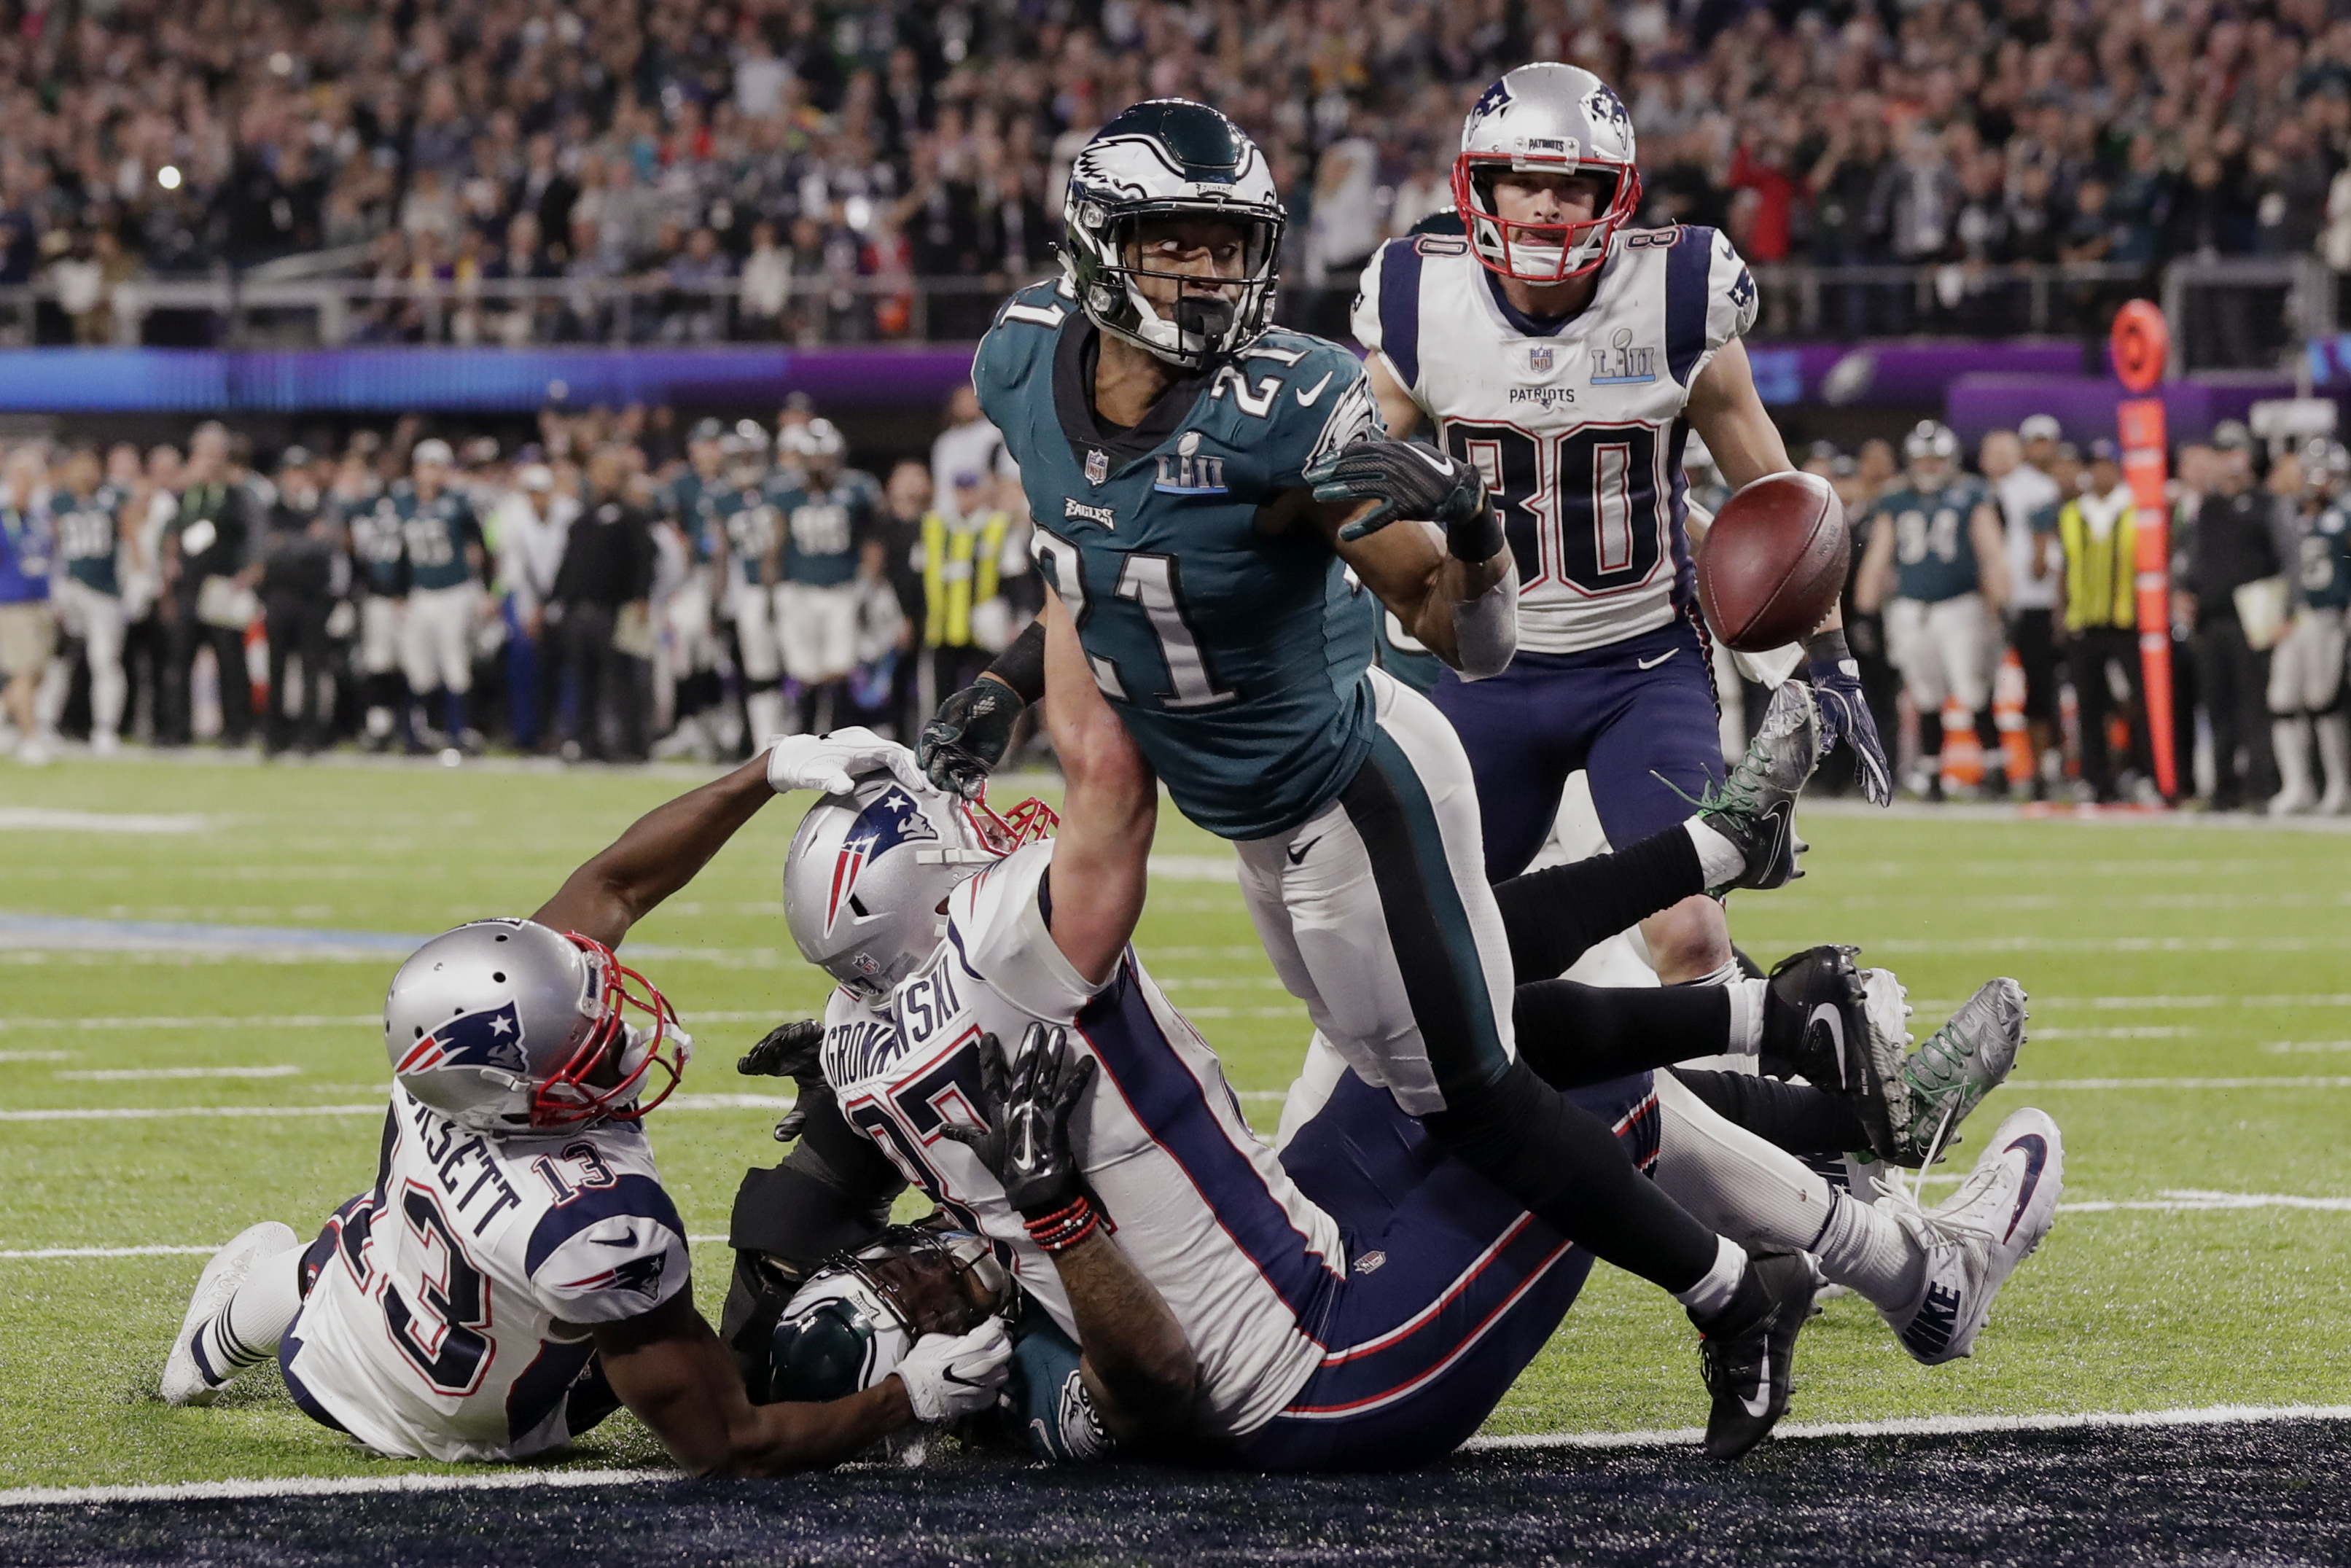 "<div class=""meta image-caption""><div class=""origin-logo origin-image ap""><span>AP</span></div><span class=""caption-text"">Philadelphia Eagles cornerback Patrick Robinson (21) looks at the loose ball, during the second half of the NFL Super Bowl 52 football game against the New England Patriots. (AP Photo/Tony Gutierrez)</span></div>"